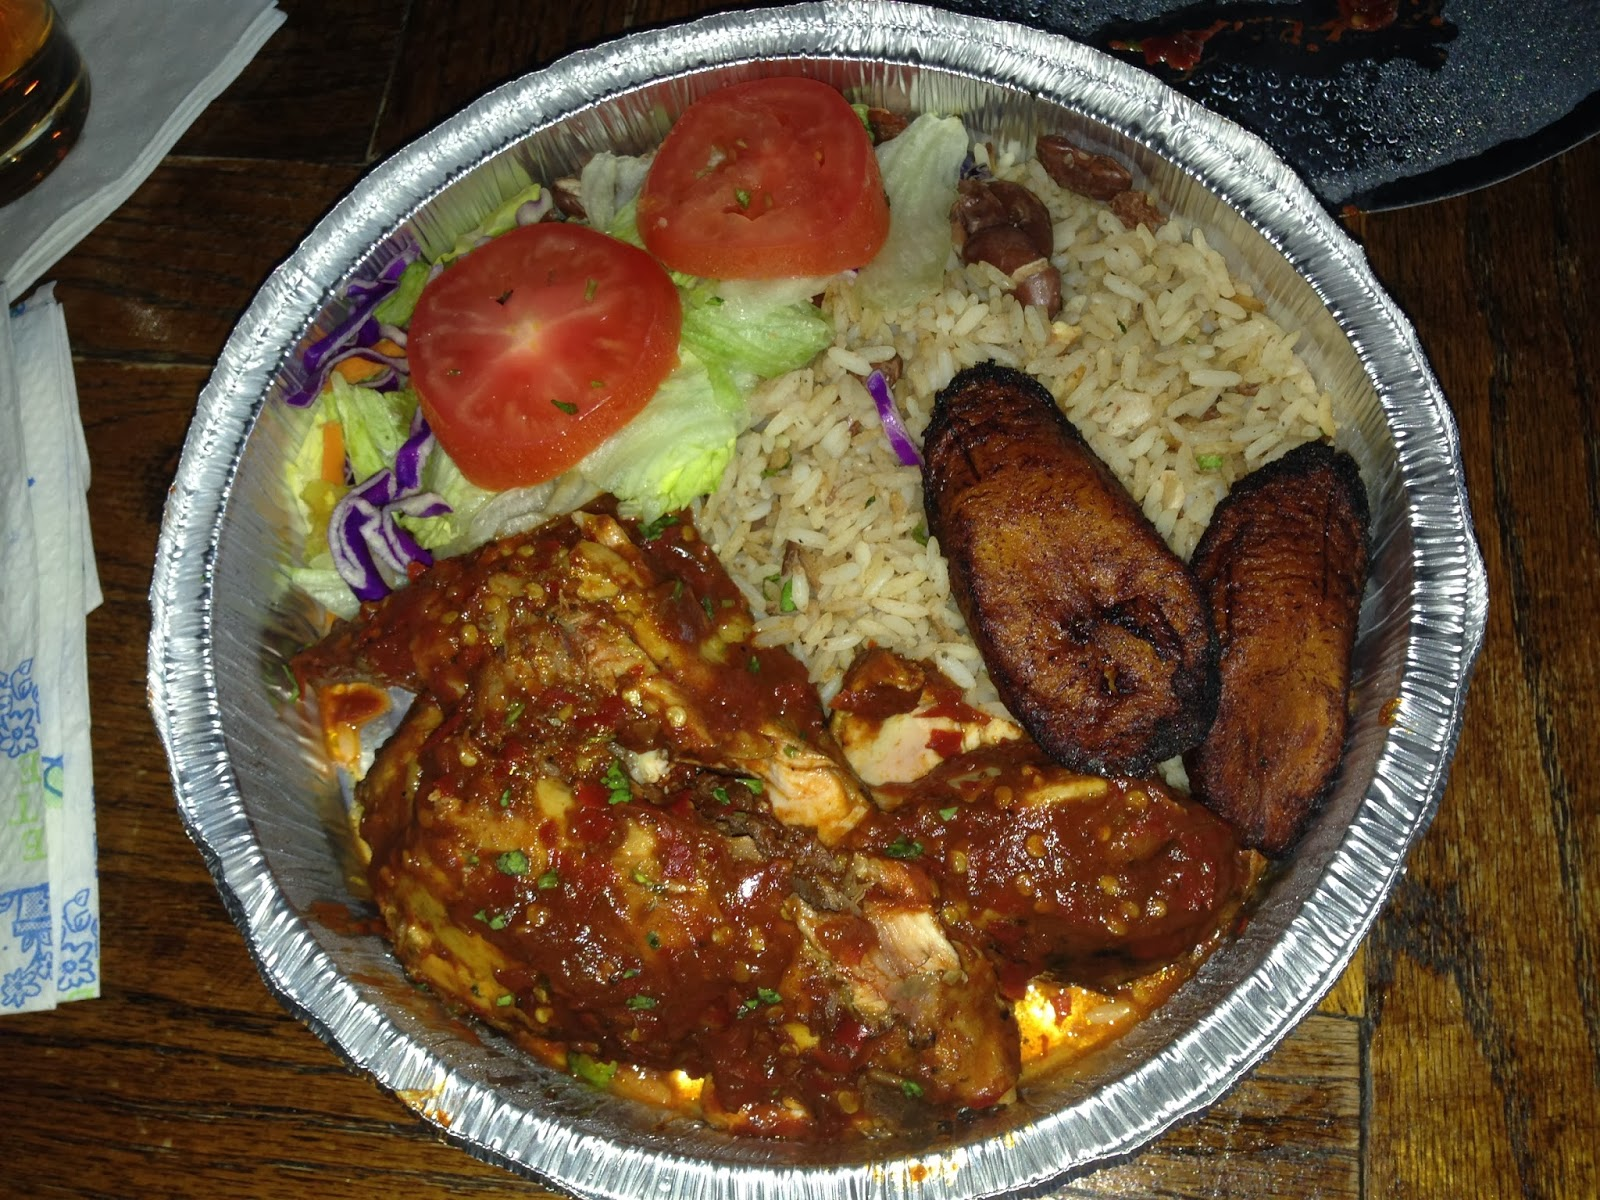 Houston food truck reviews blaze it up reggae plate for African cuisine houston